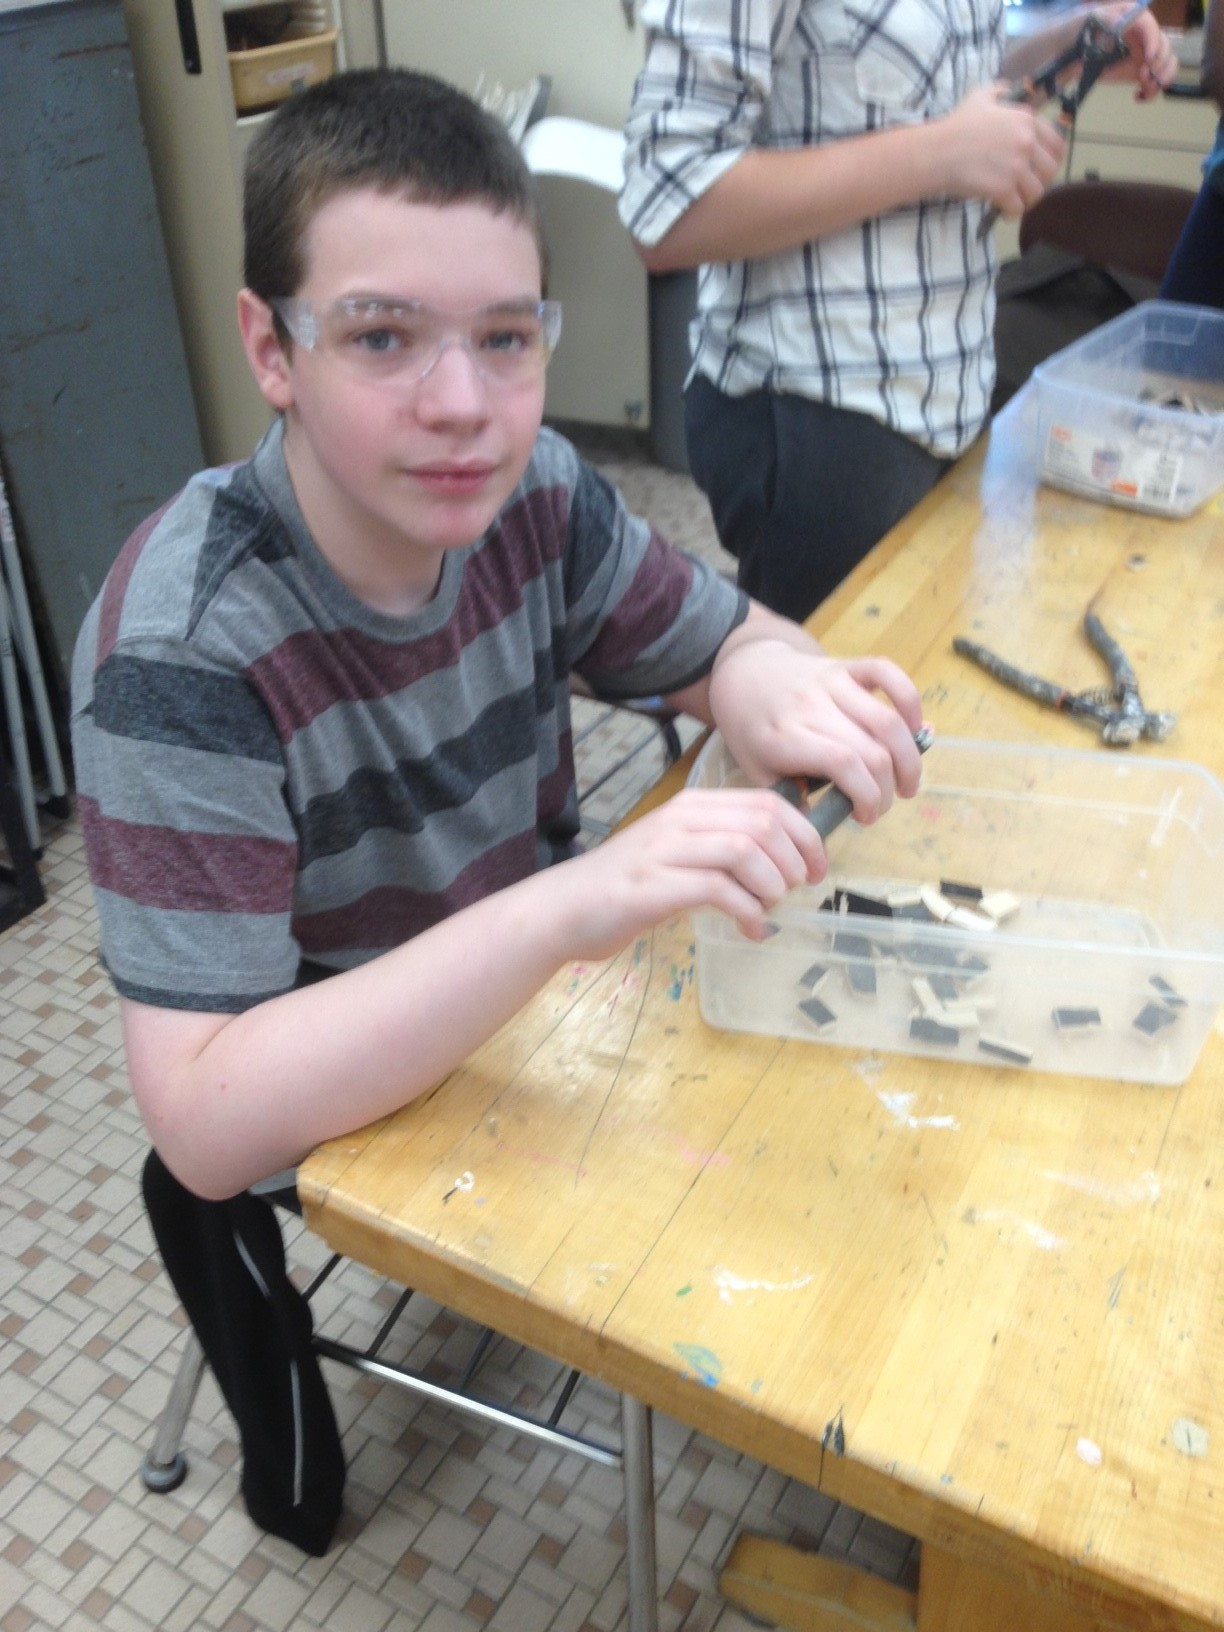 Students cut the tile in small rectangular pieces